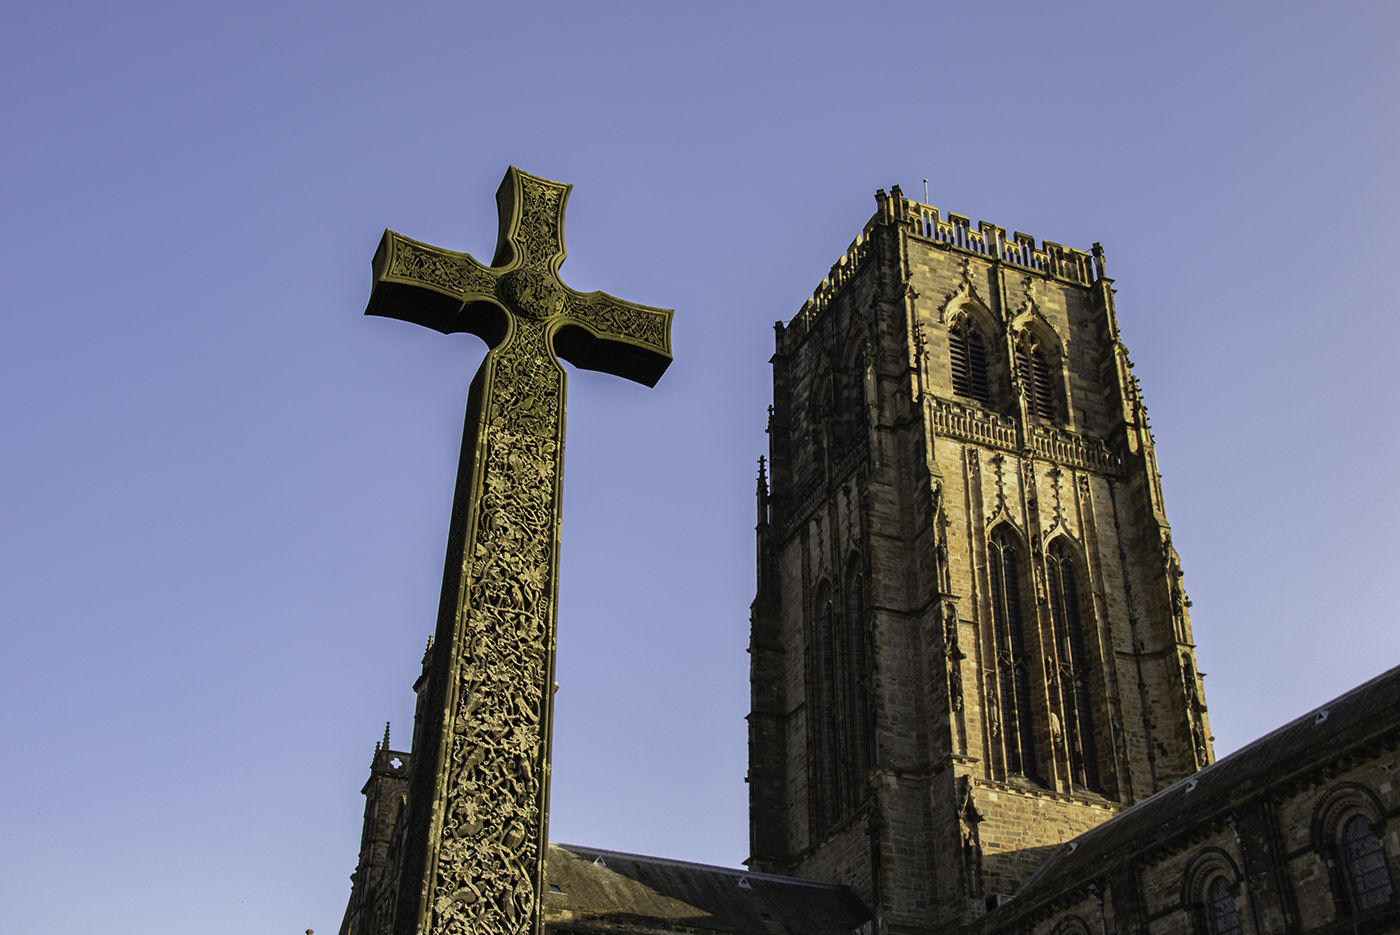 The Cathedral and the Cross